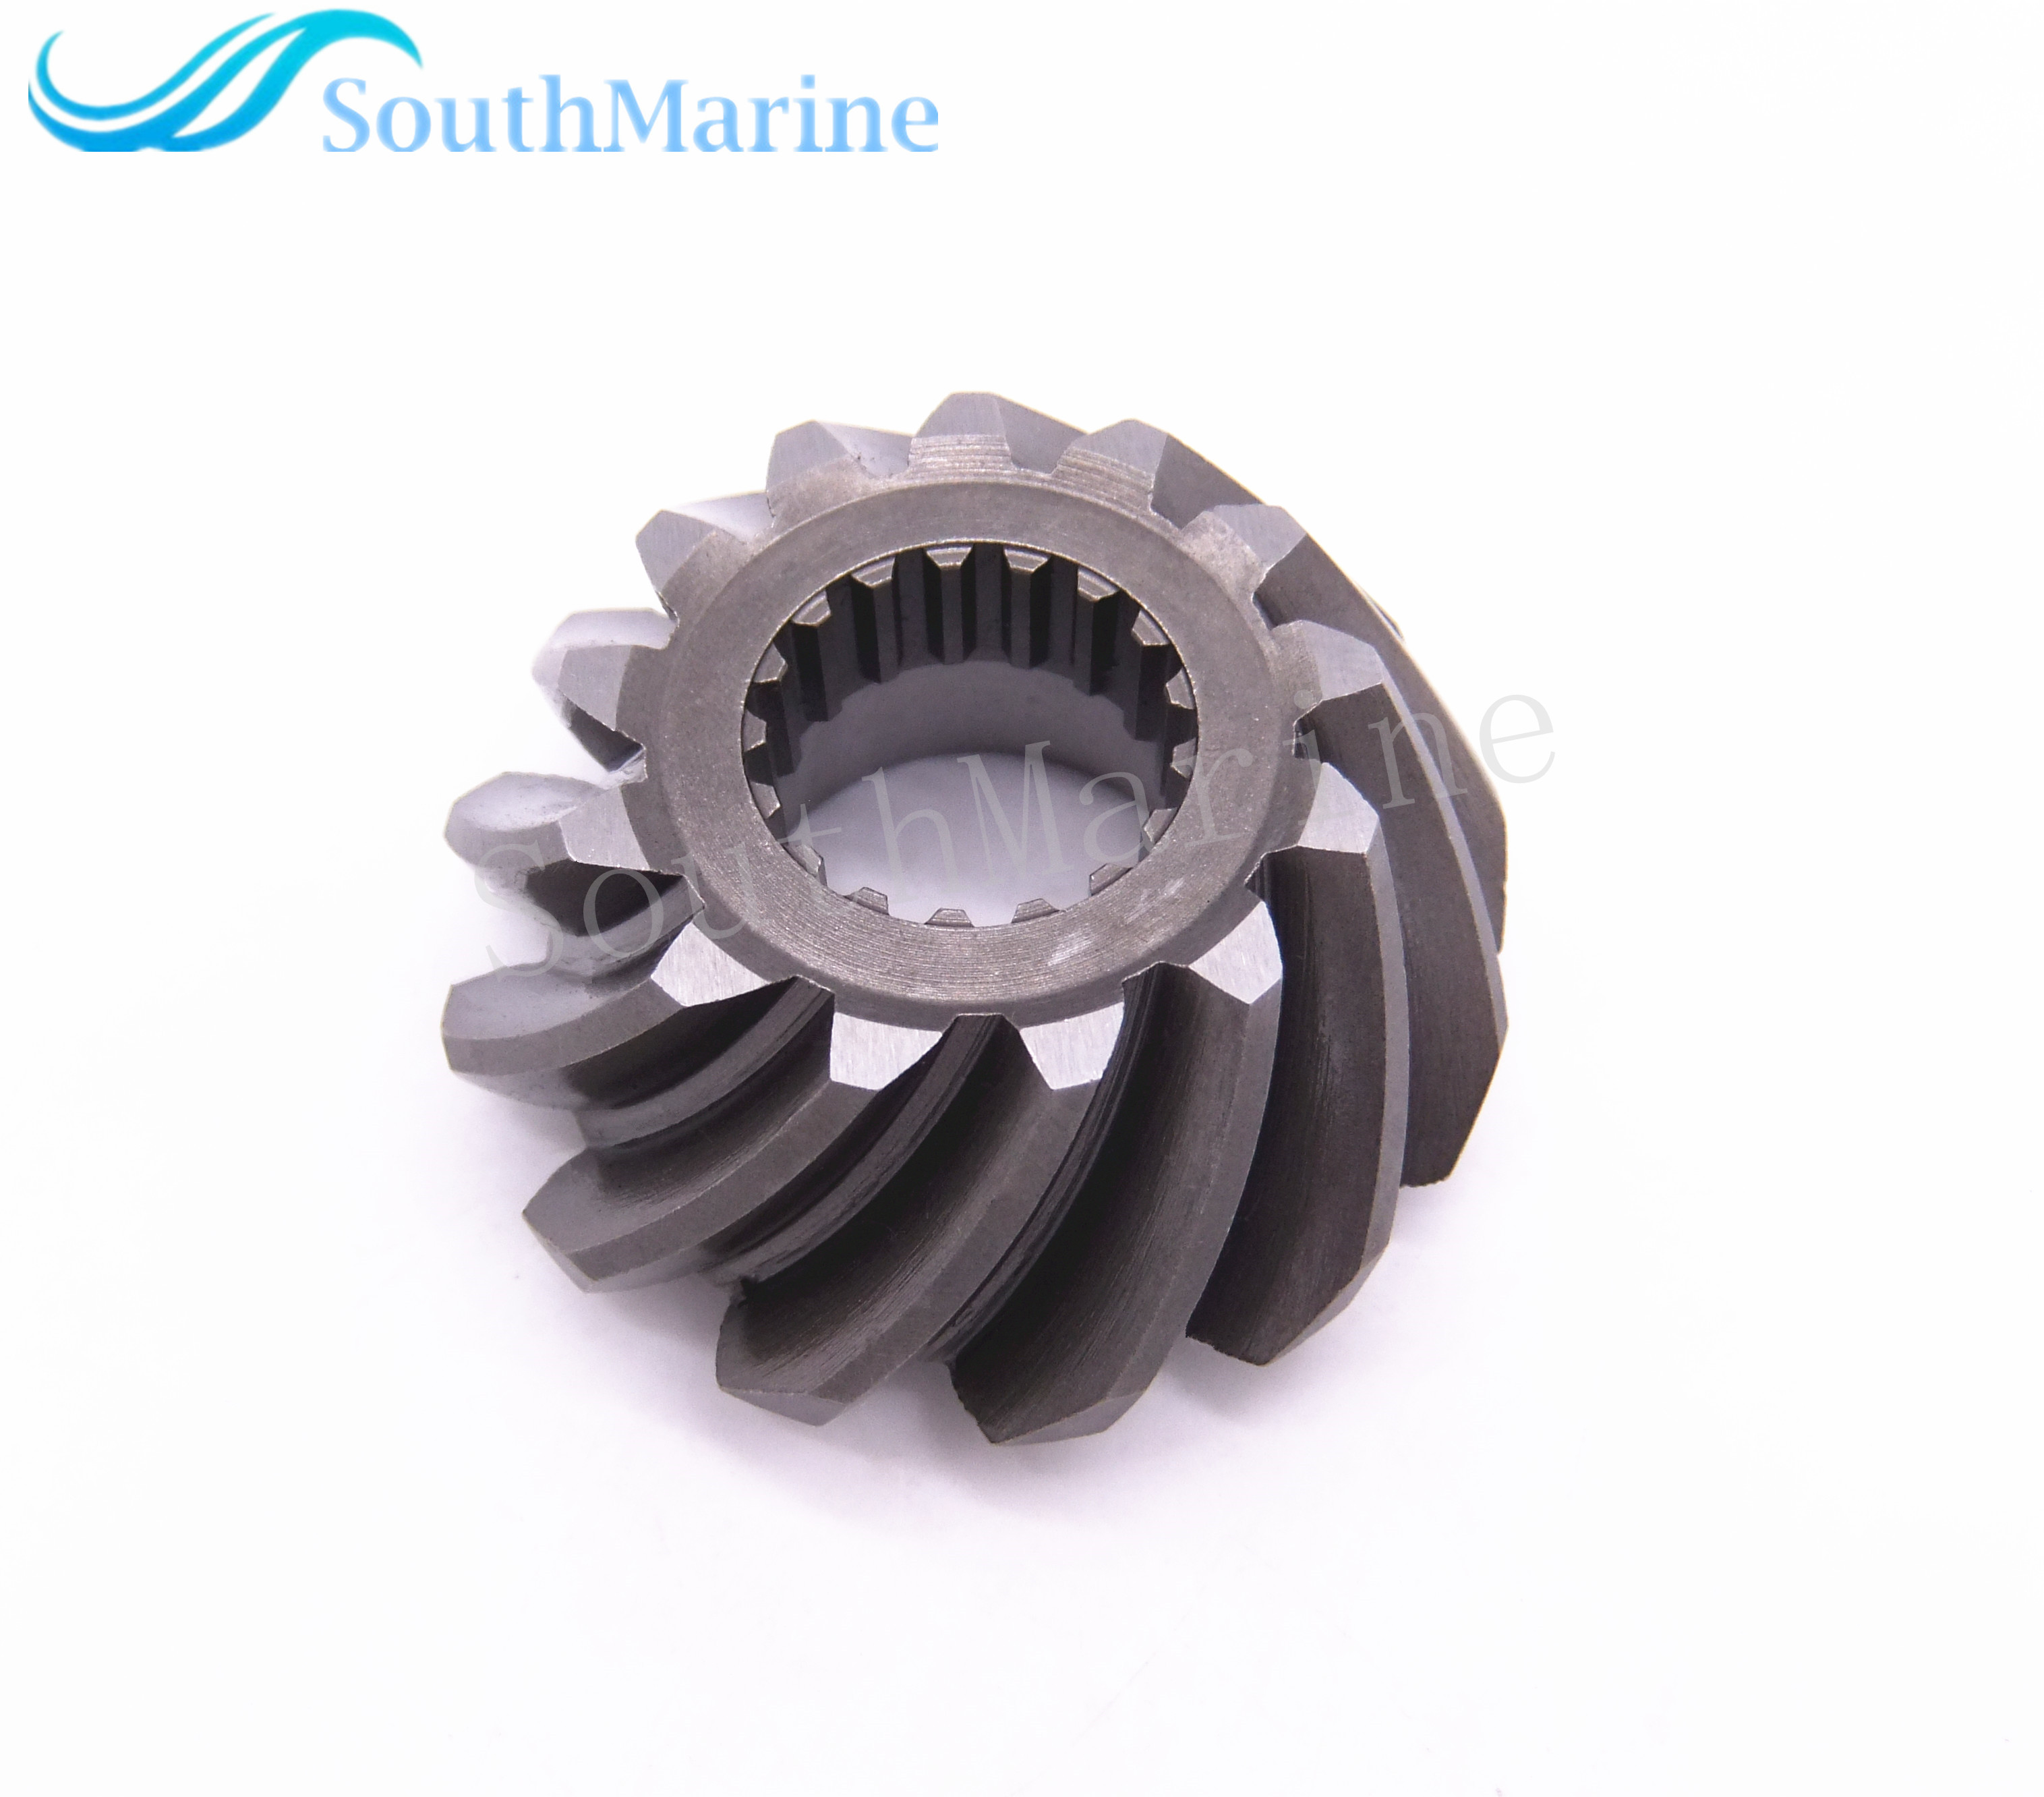 Boat Parts & Accessories T85-04000605 Pinion Gear For Parsun Hdx Outboard Engine 2-stroke T75 T85 T90 Boat Motor Neither Too Hard Nor Too Soft